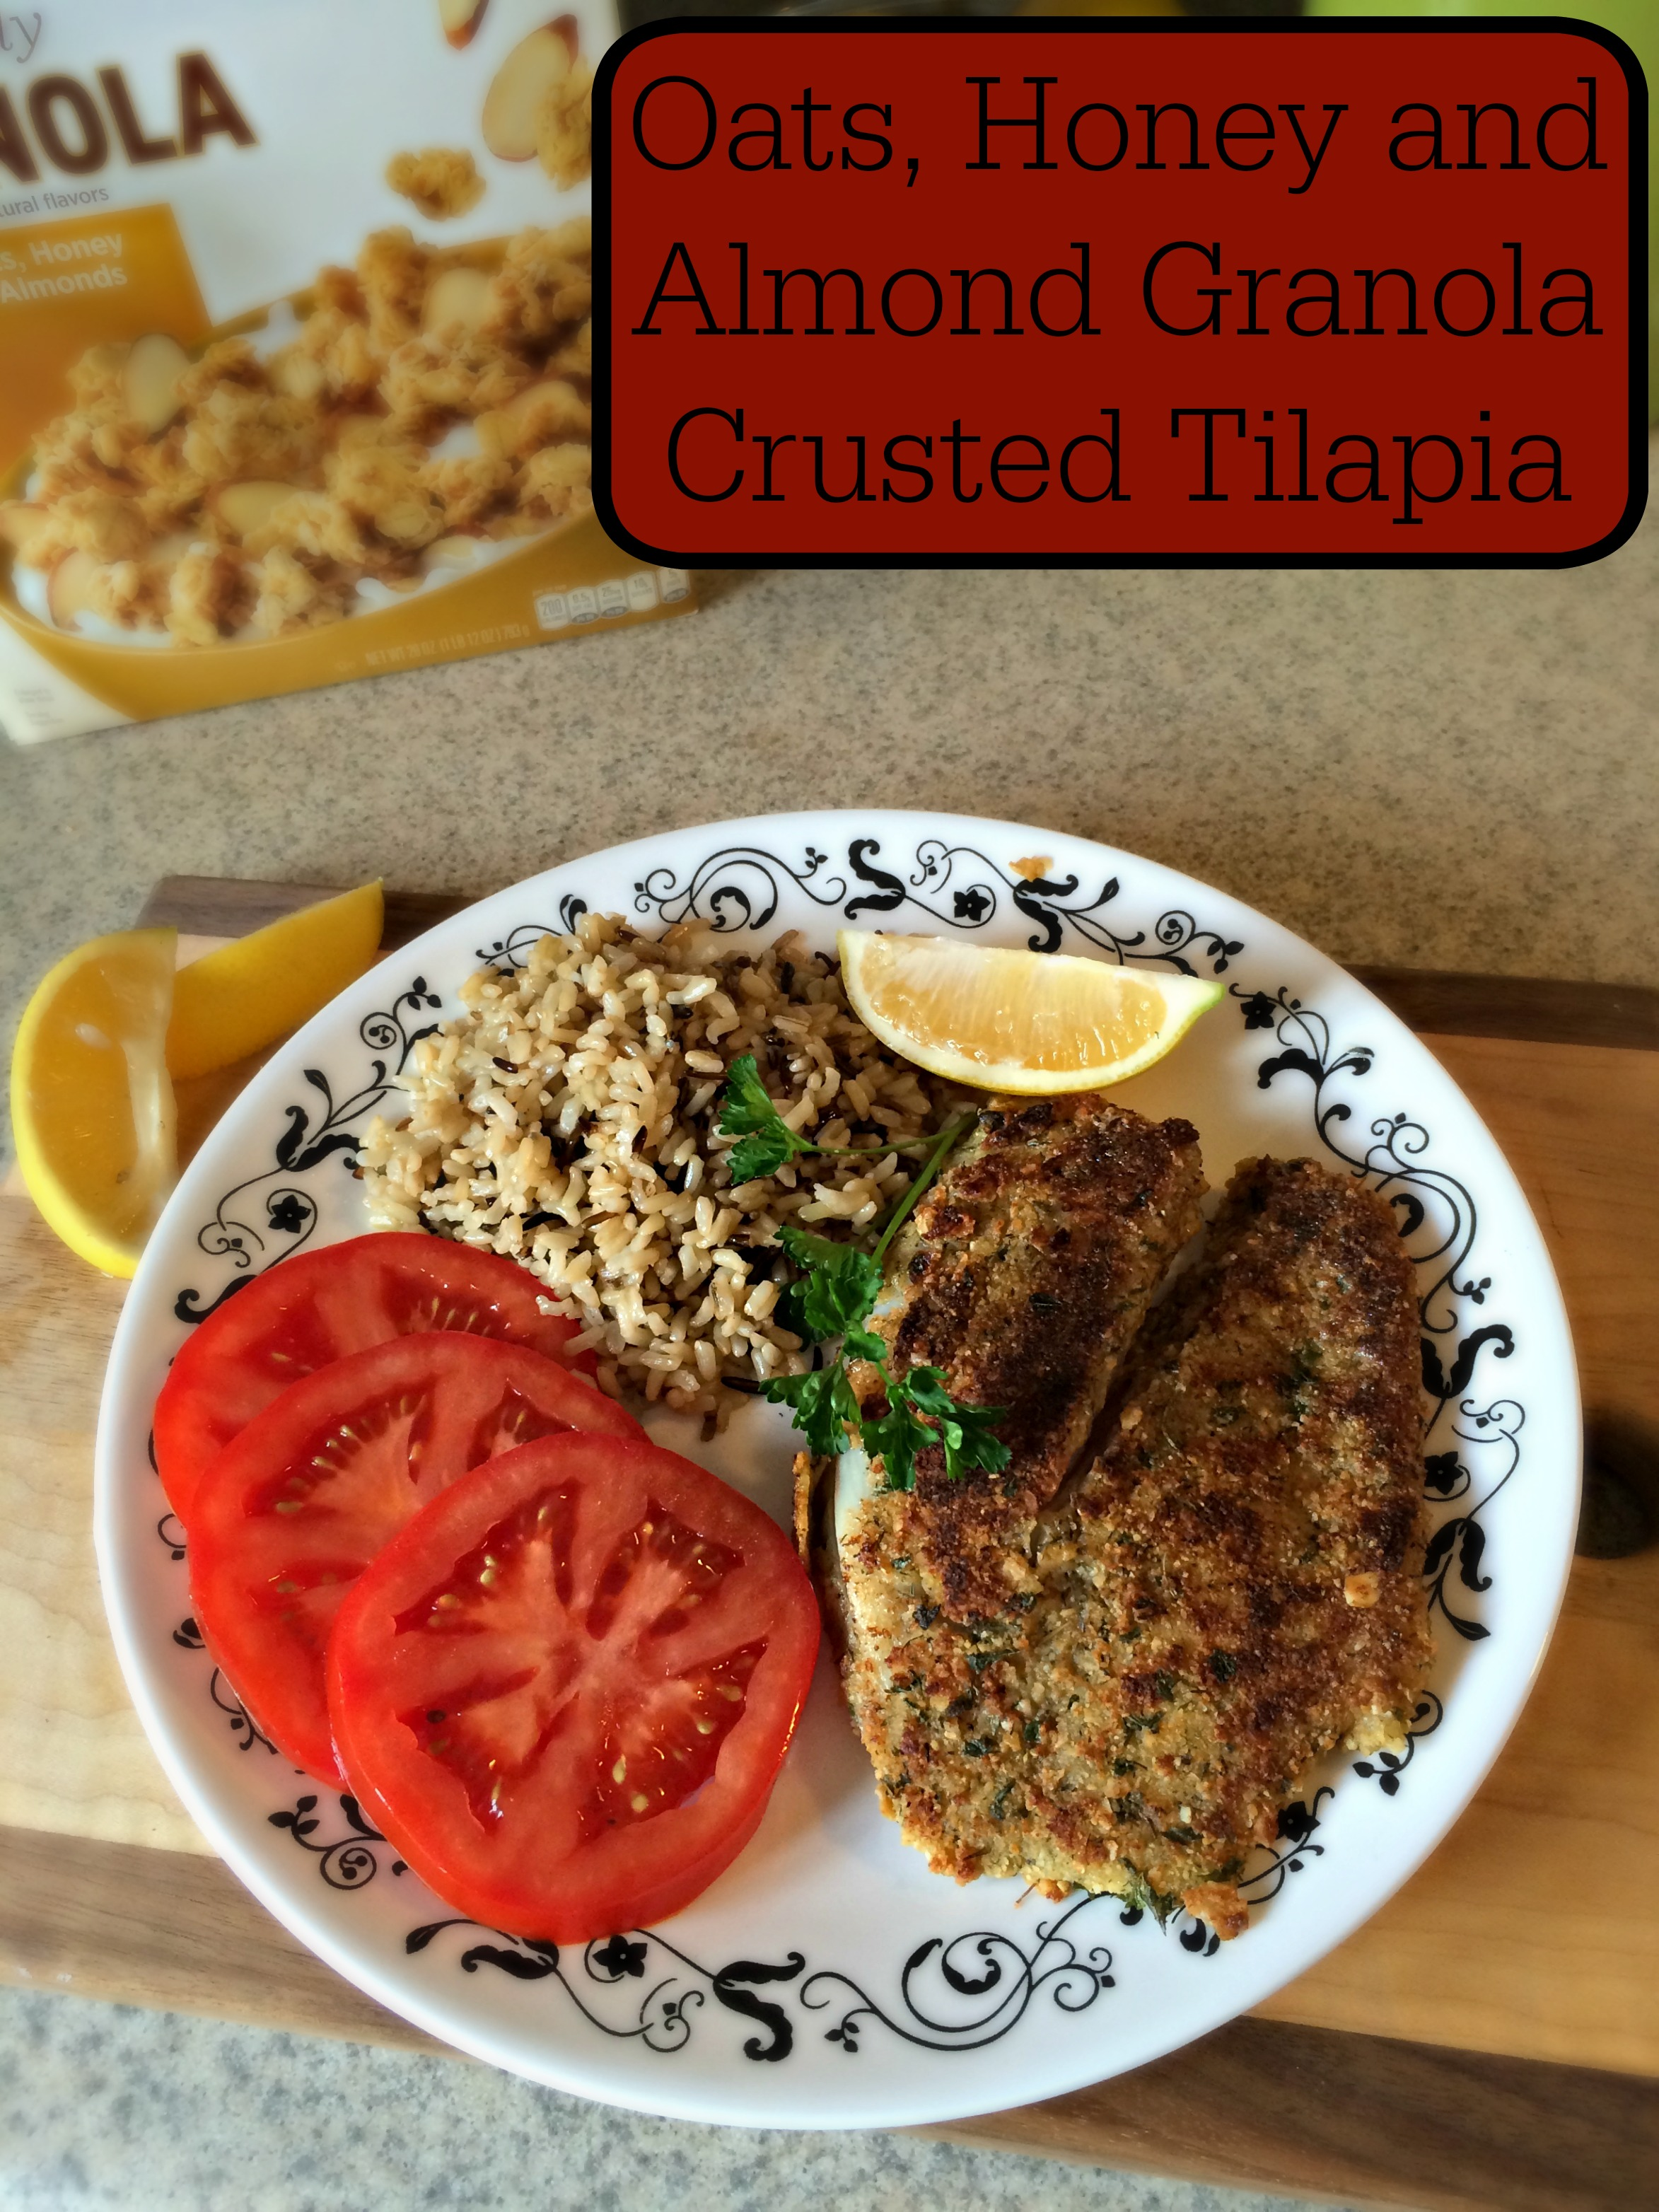 Oats, Honey, and Almond Granola Crusted Tilapia Recipe